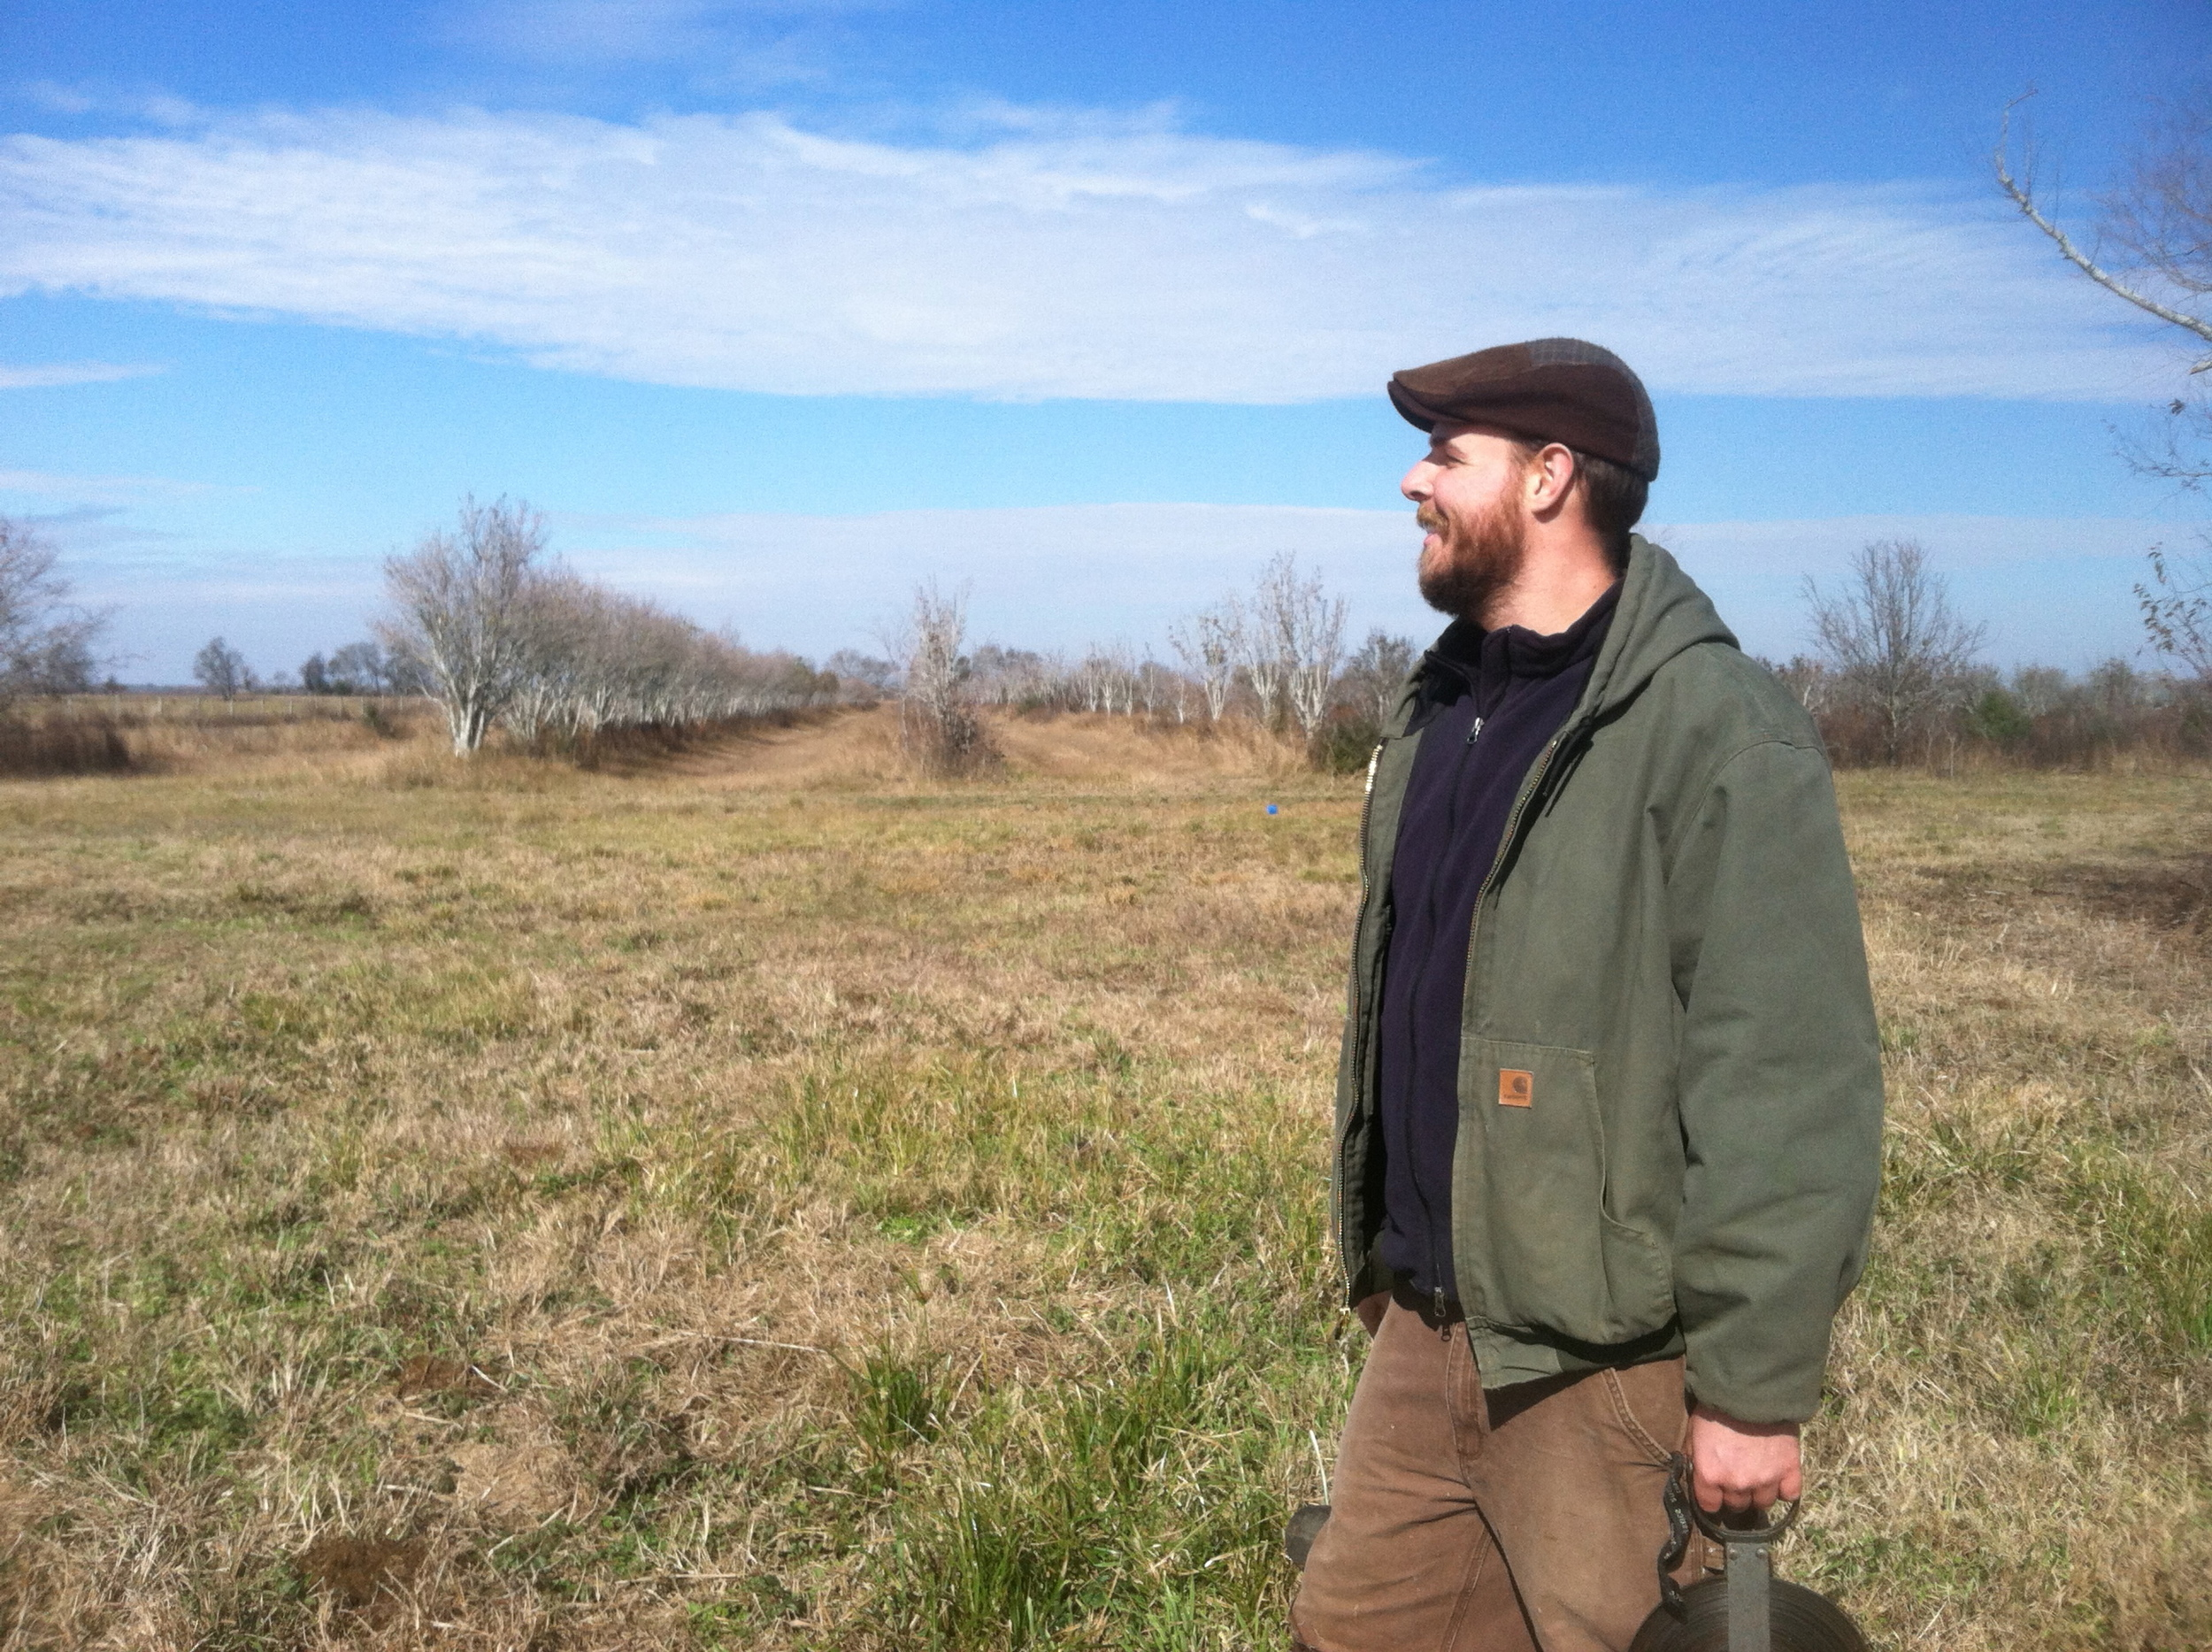 McFarmer looks upon the orchard. Pears and pears to come...